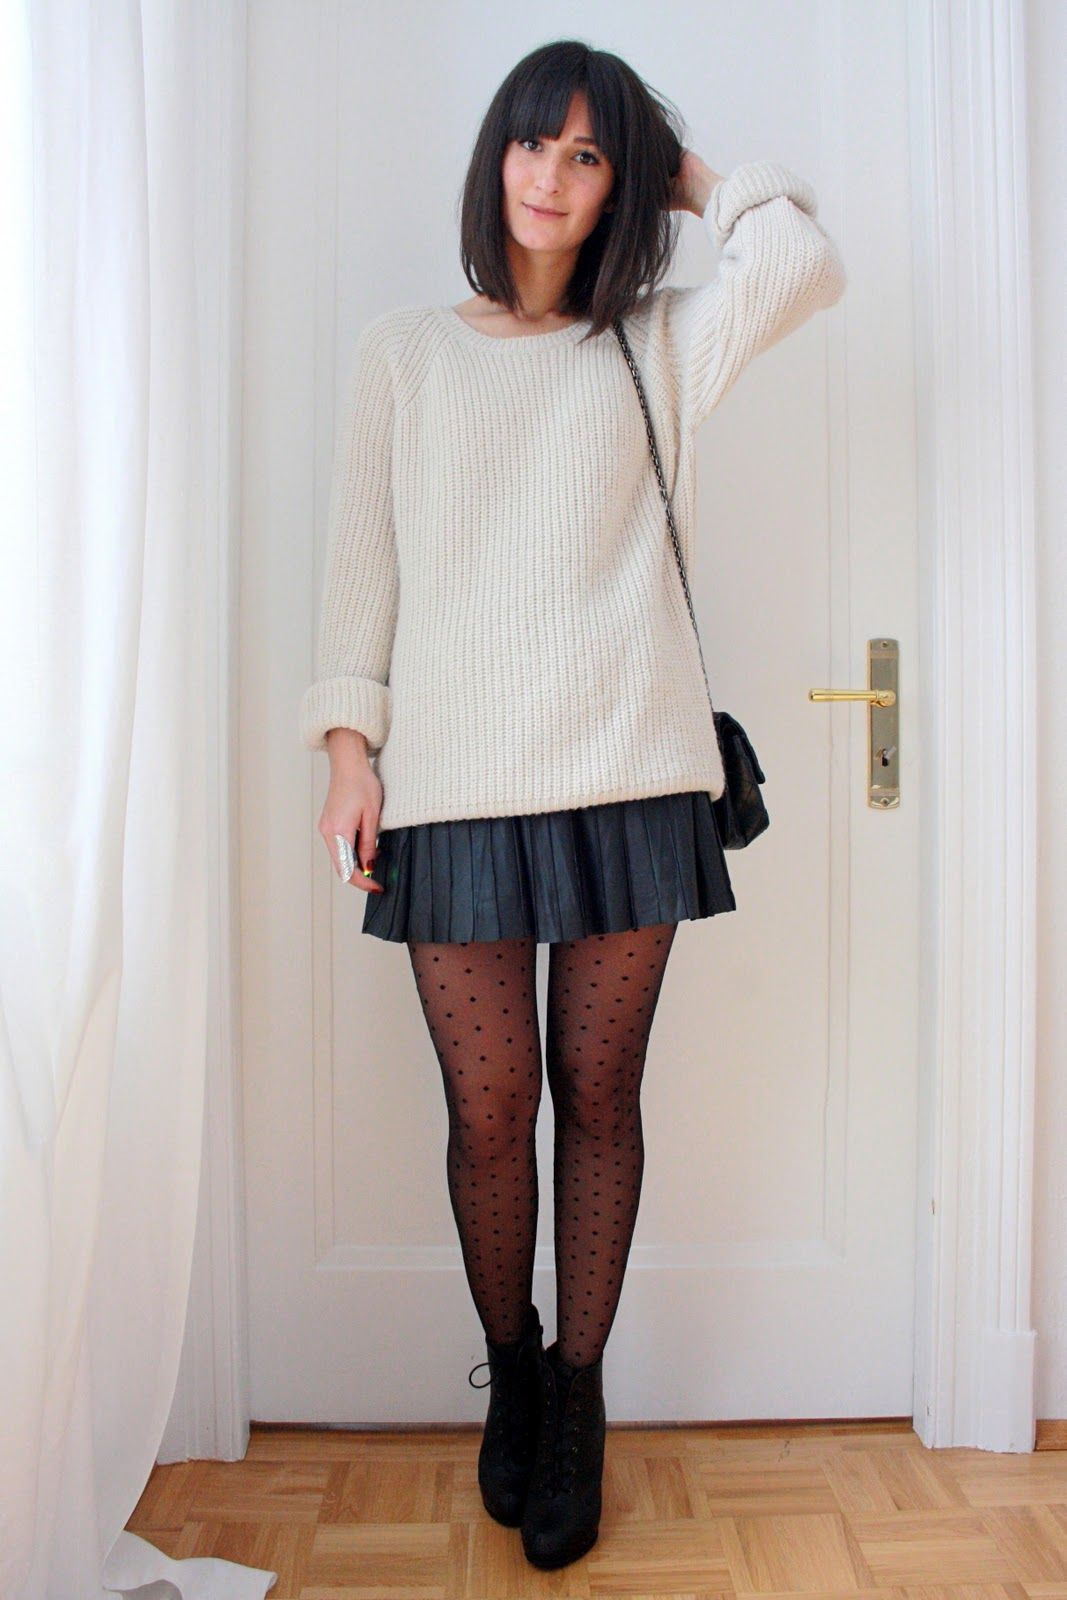 oversized sweater with skirt, cute. and i neeed dotted tights